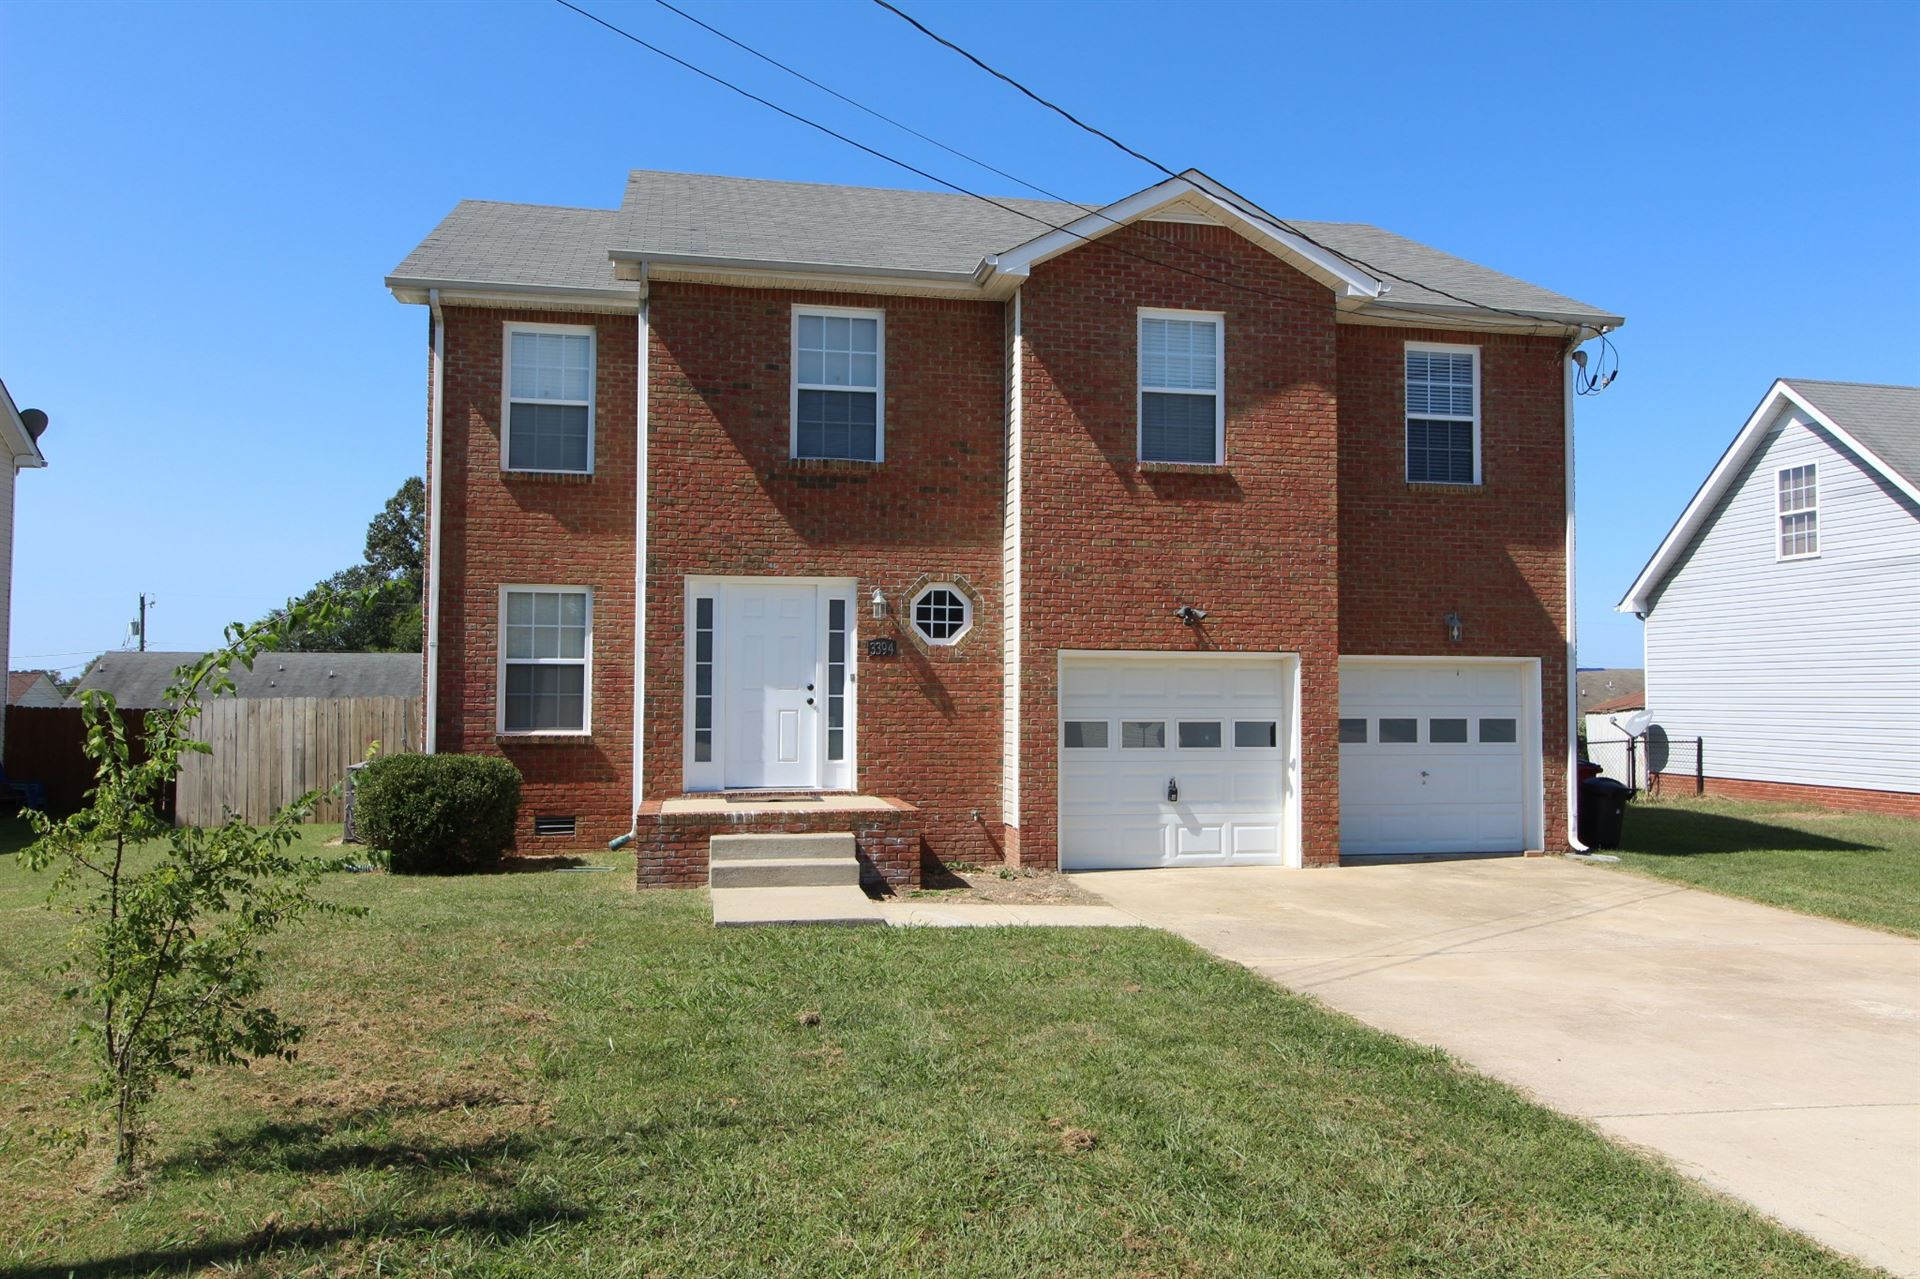 3394 Bradfield Dr, Clarksville, TN 37042 - MLS#: 2182532